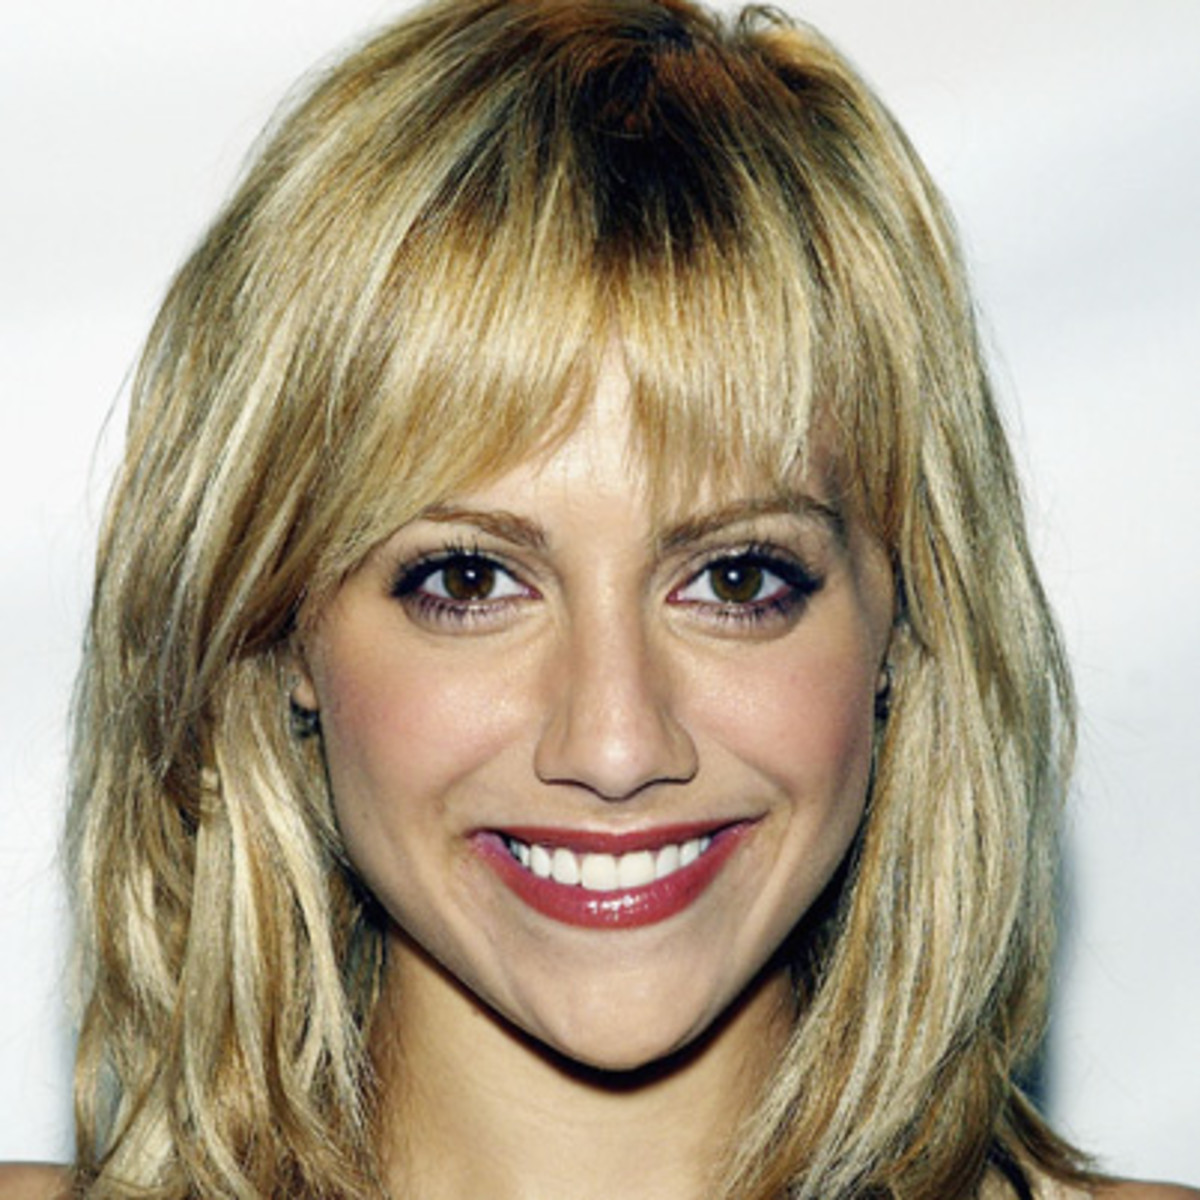 Brittany murphy mother died